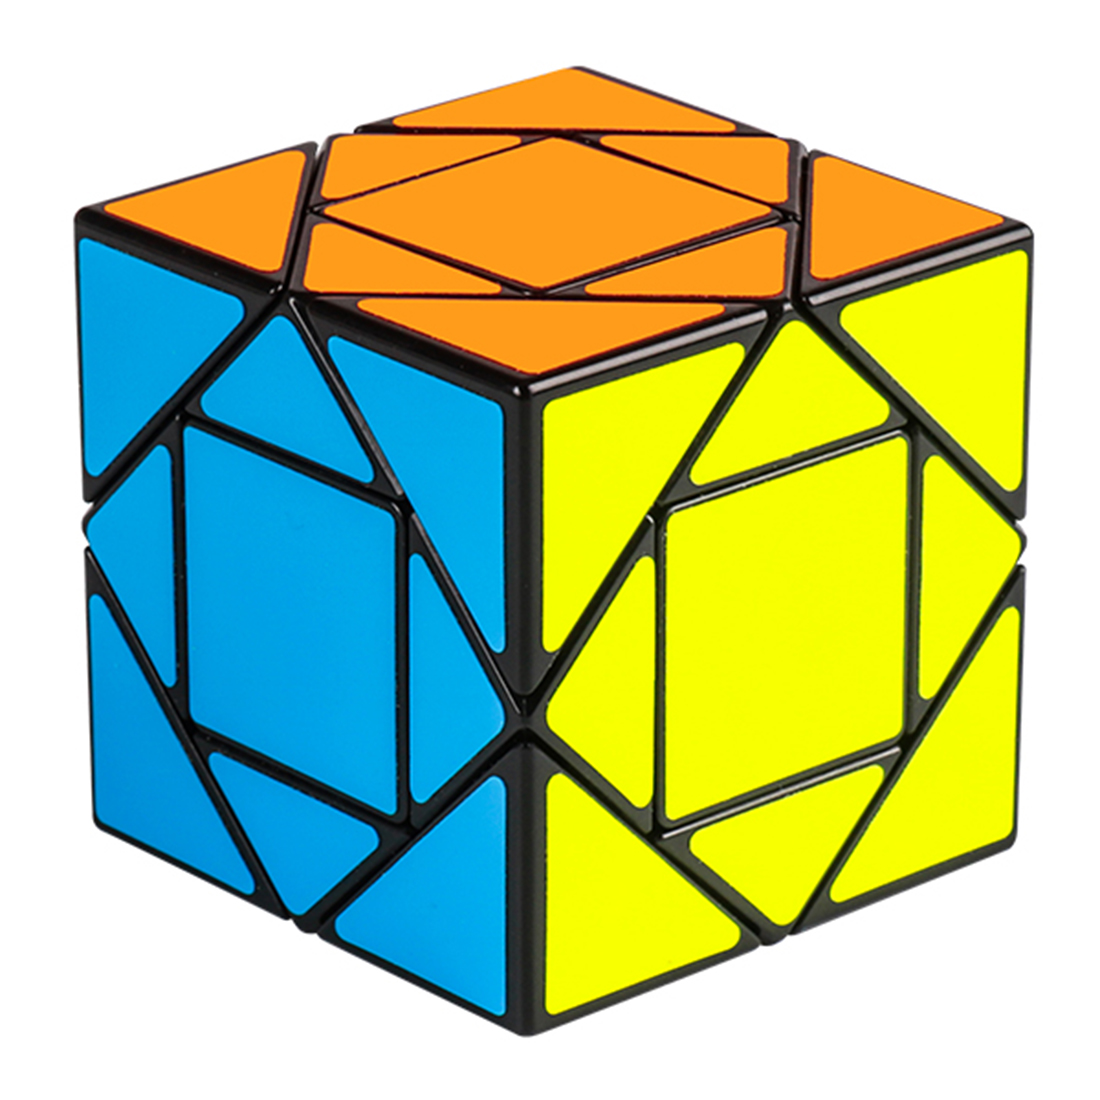 Moyu MF8847 Mofang Jiaoshi Magic Cube Cubing Classroom Pandora Strange Shape Professional Speed Educational  Toys Game CubeMoyu MF8847 Mofang Jiaoshi Magic Cube Cubing Classroom Pandora Strange Shape Professional Speed Educational  Toys Game Cube